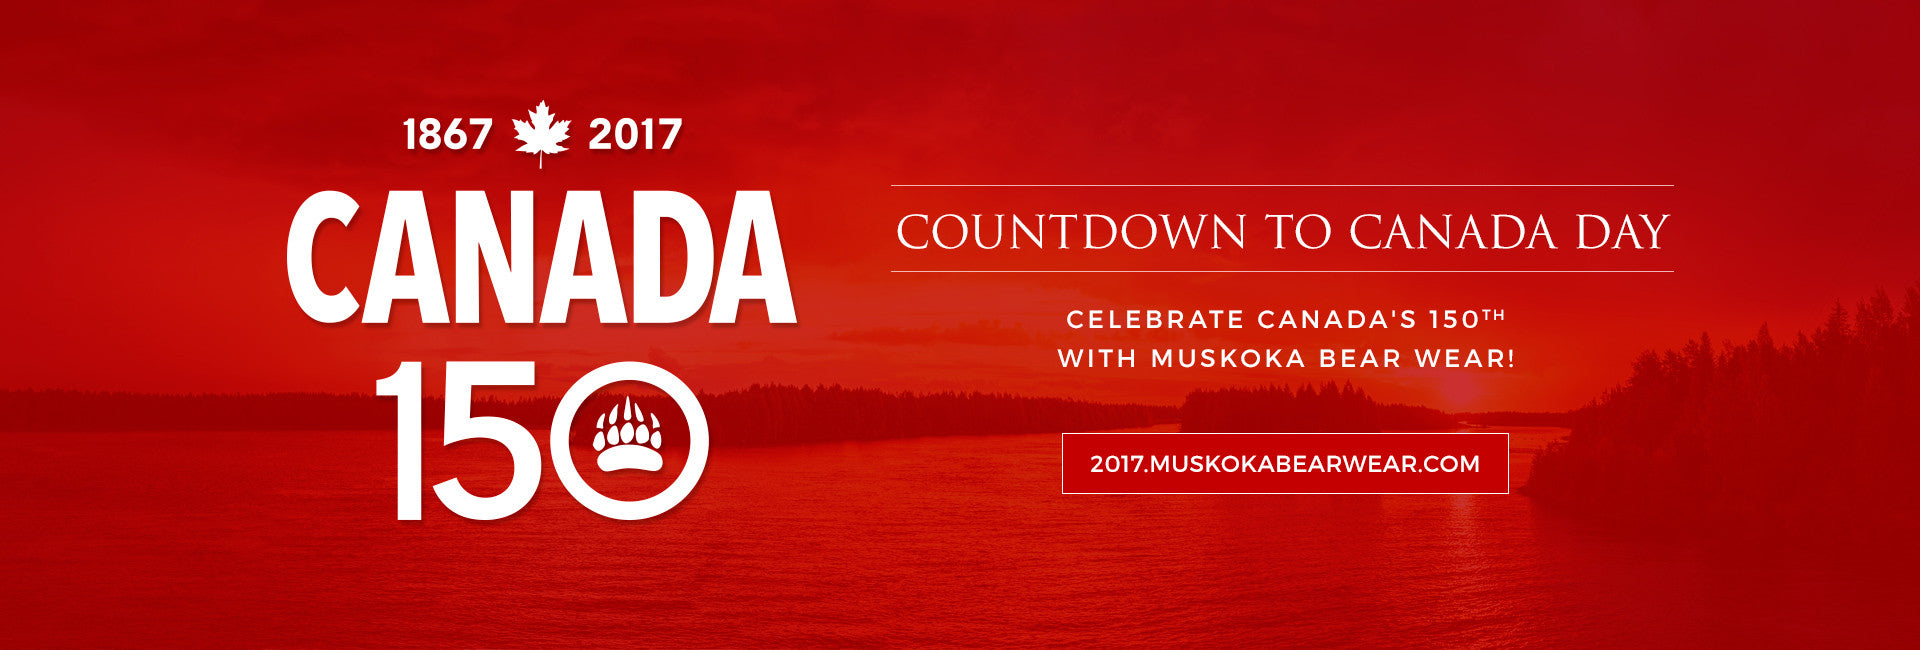 Countdown to Canada Day!